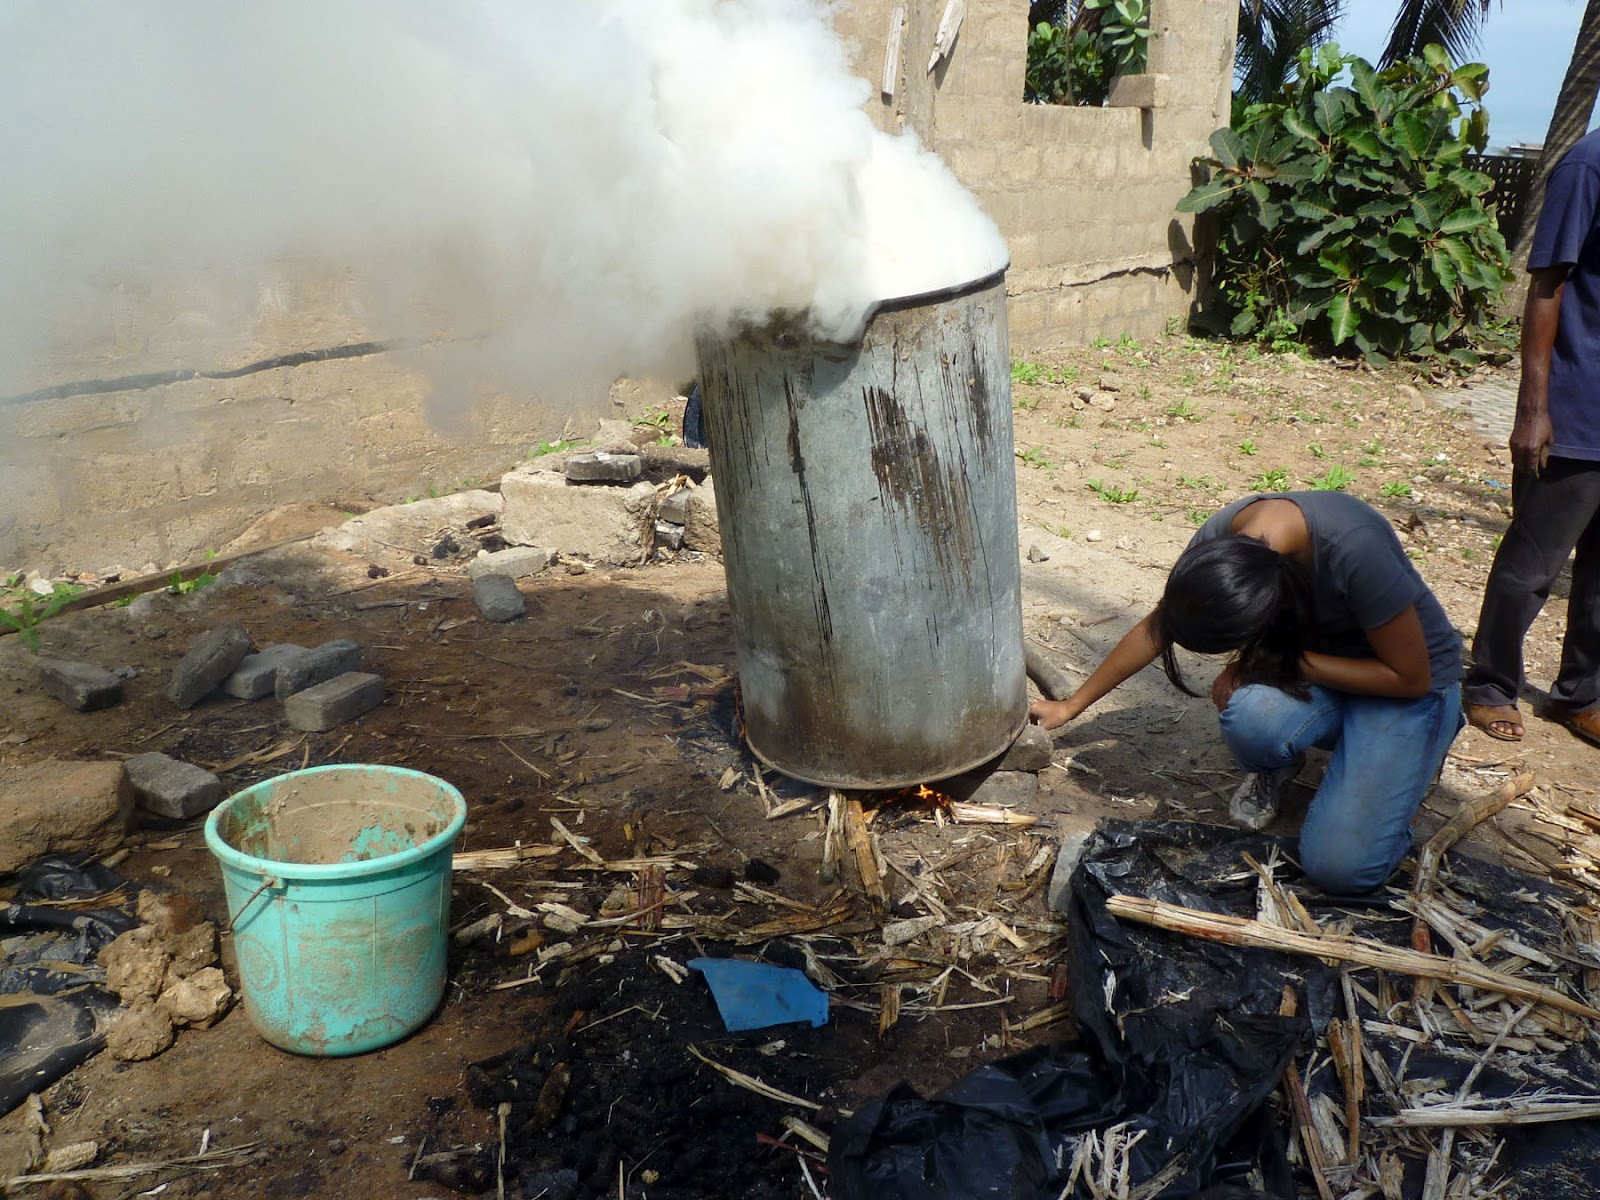 how to put out charcoal briquettes